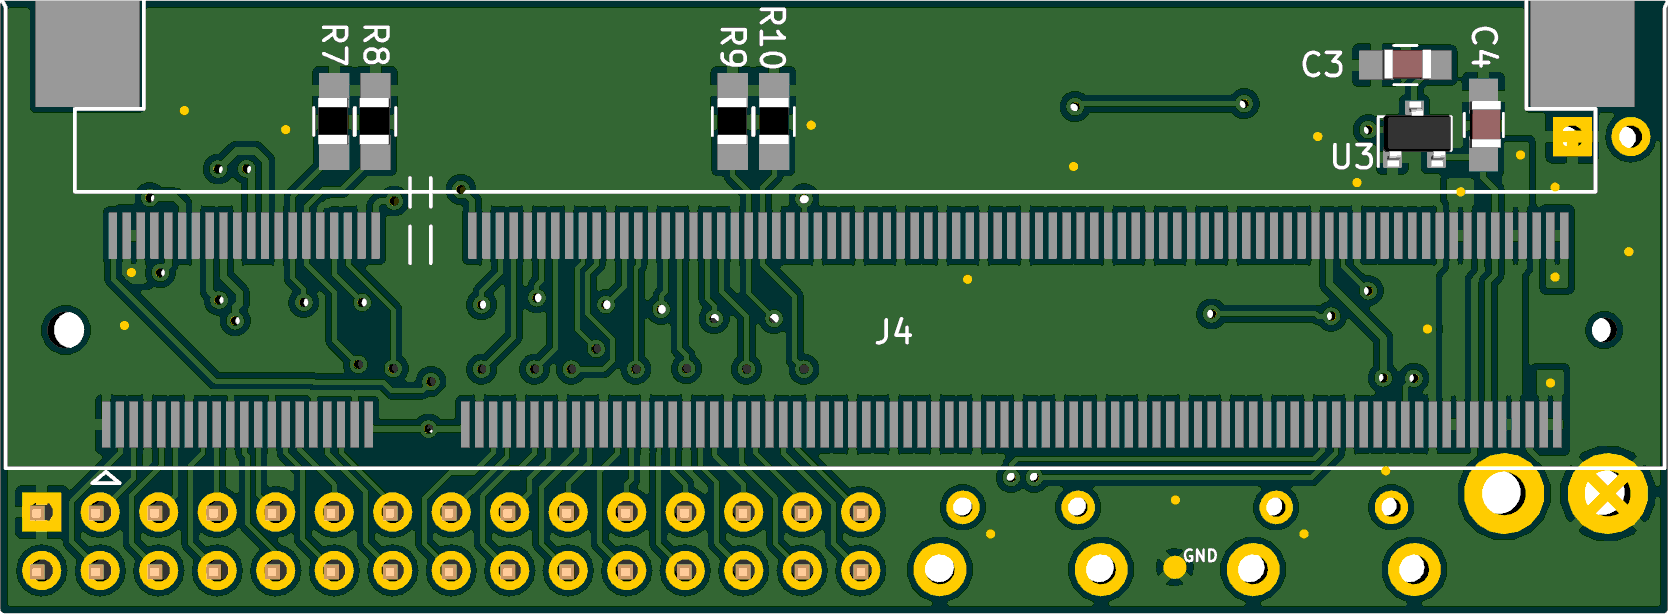 Preview of the back of the PCB